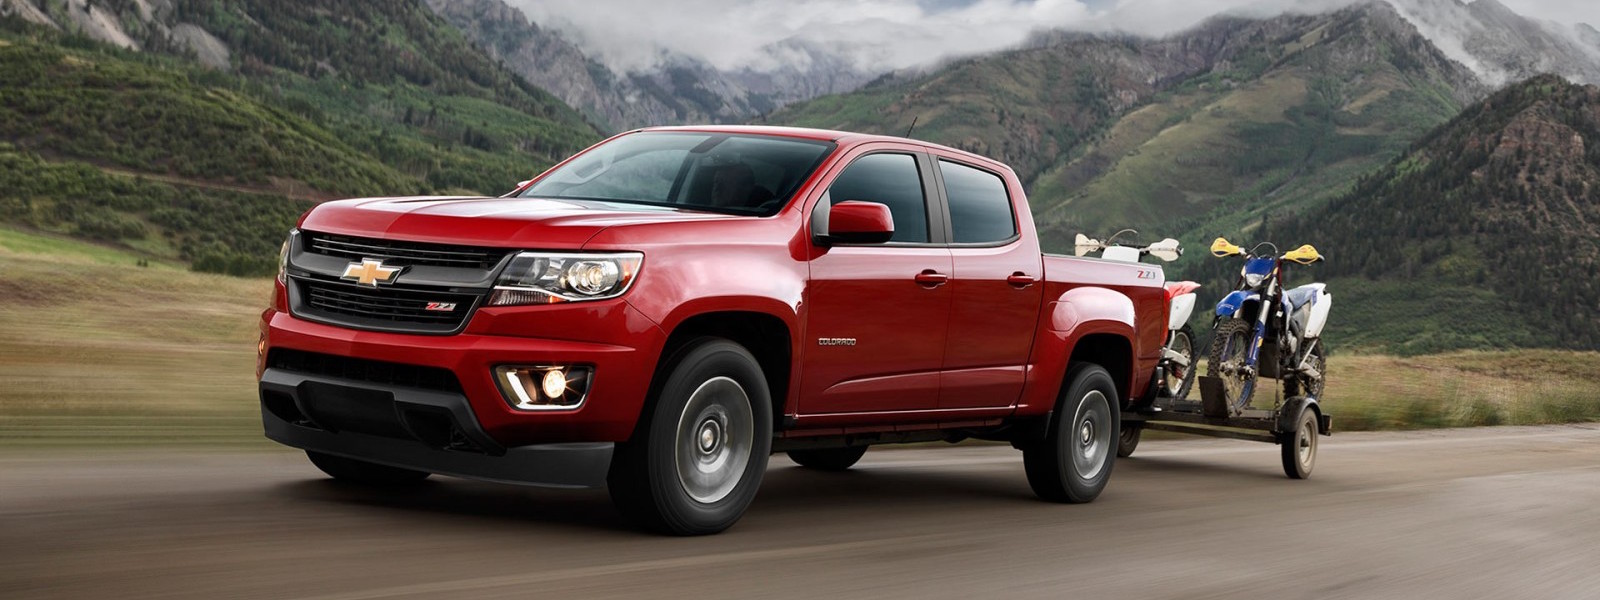 2016 Chevy Colorado Performance